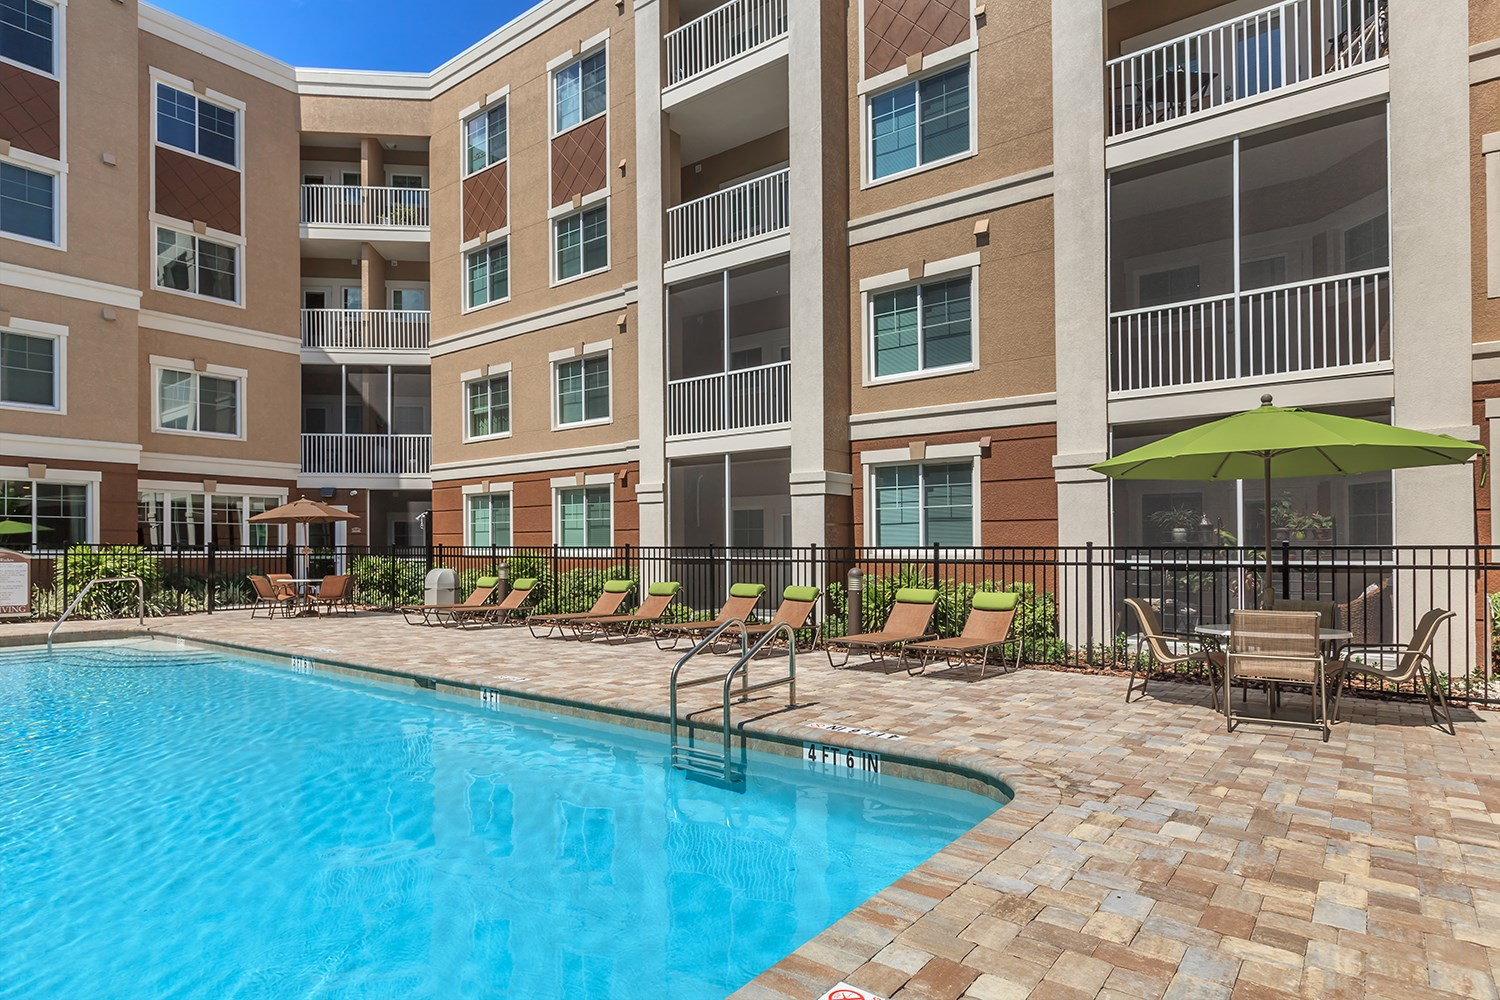 Swimming Pool at Riversong Apartments in Bradenton, FL